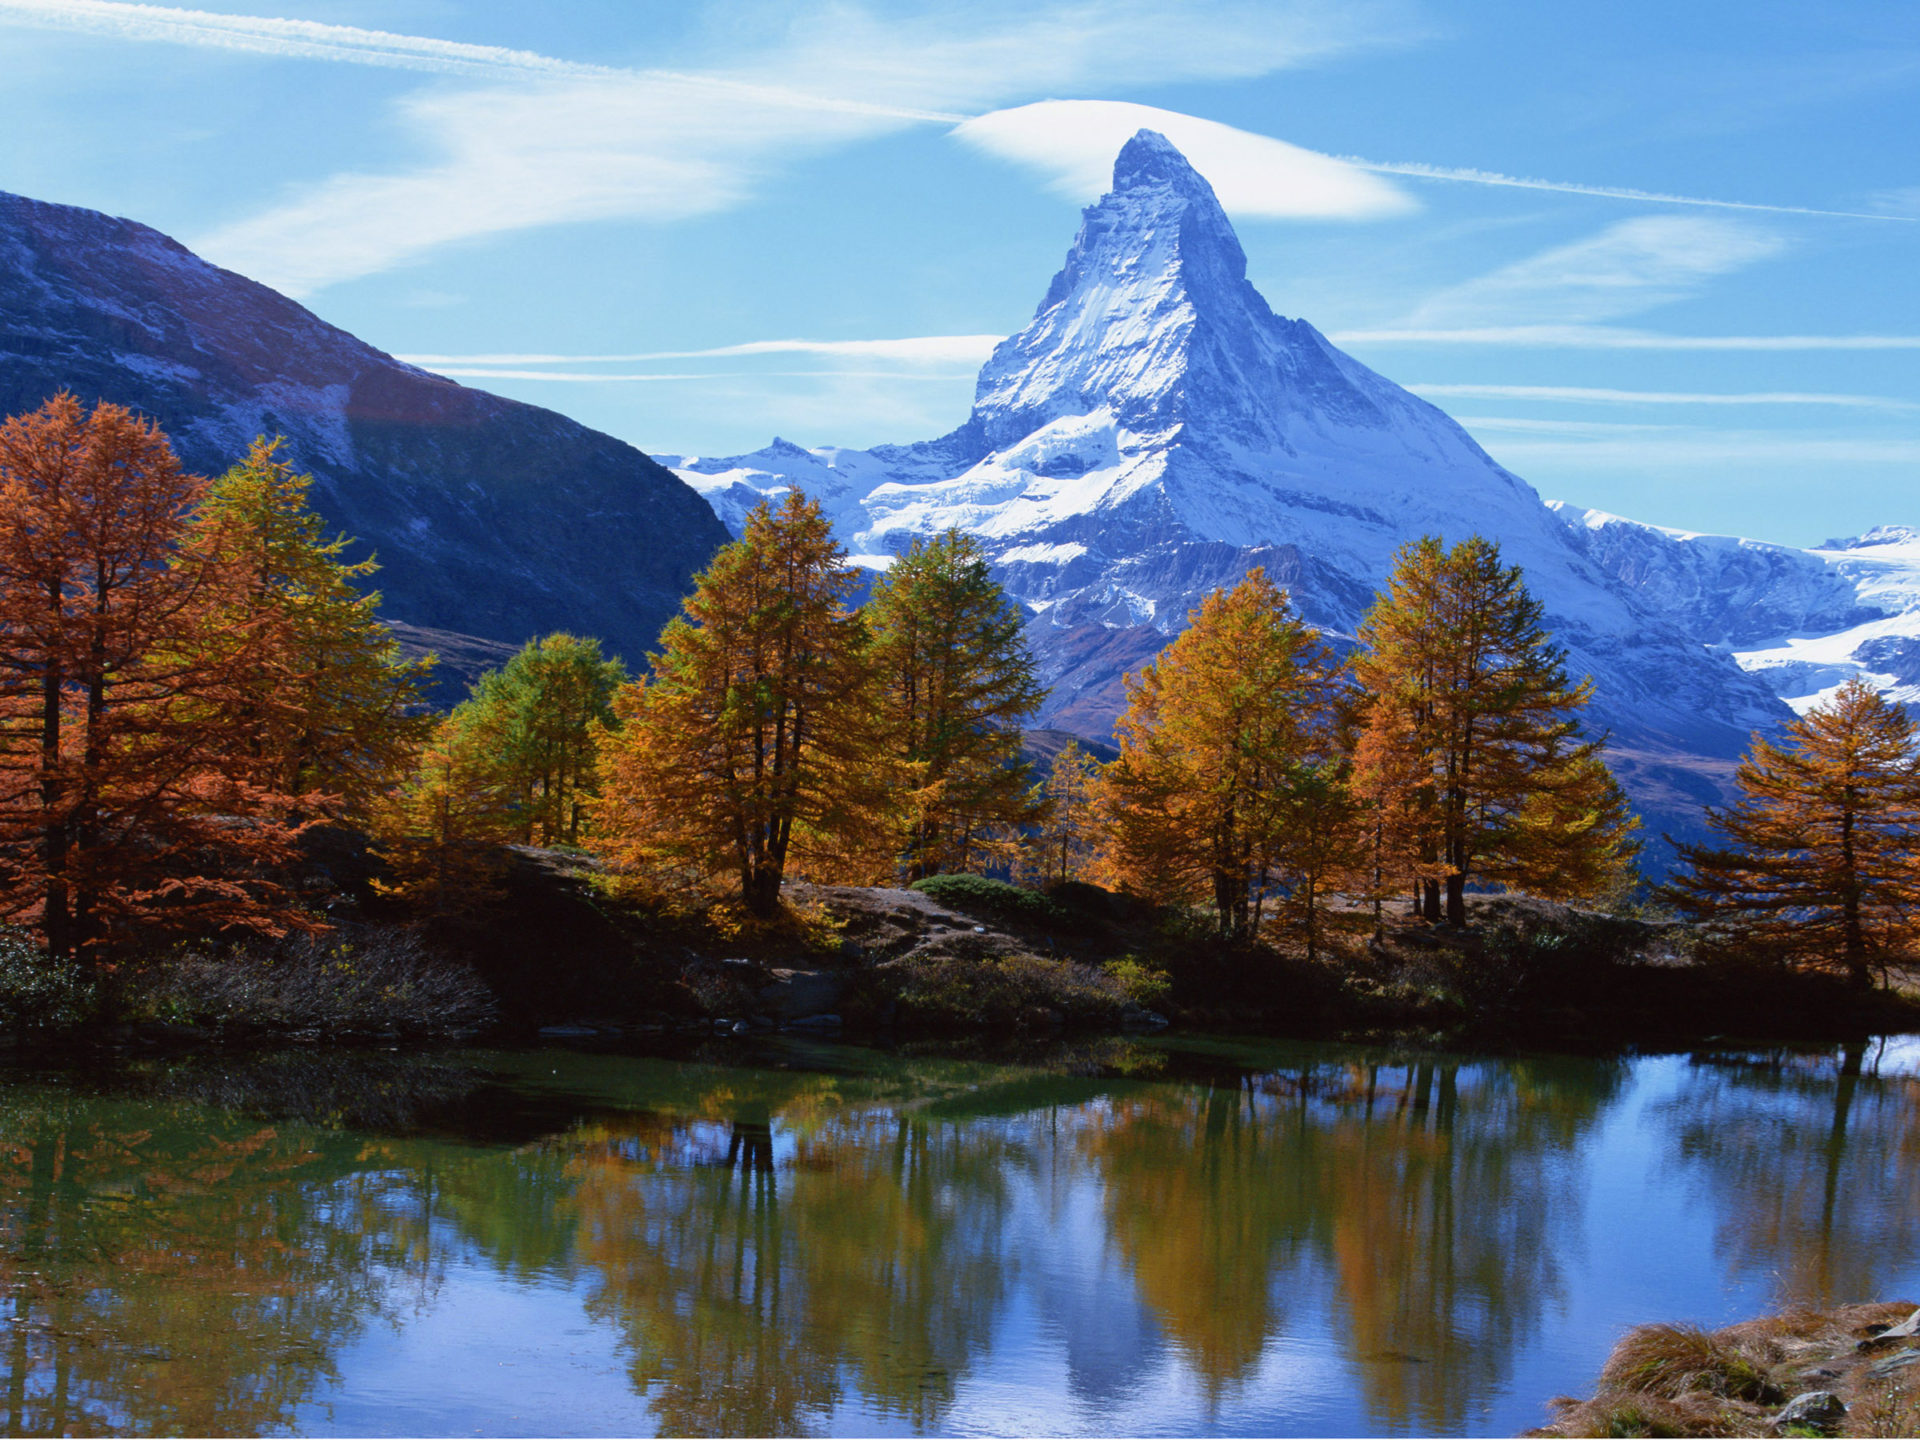 Fall Leaves Wallpaper Landscape Mountain Rocky Alpine Peak With Snow Autumn